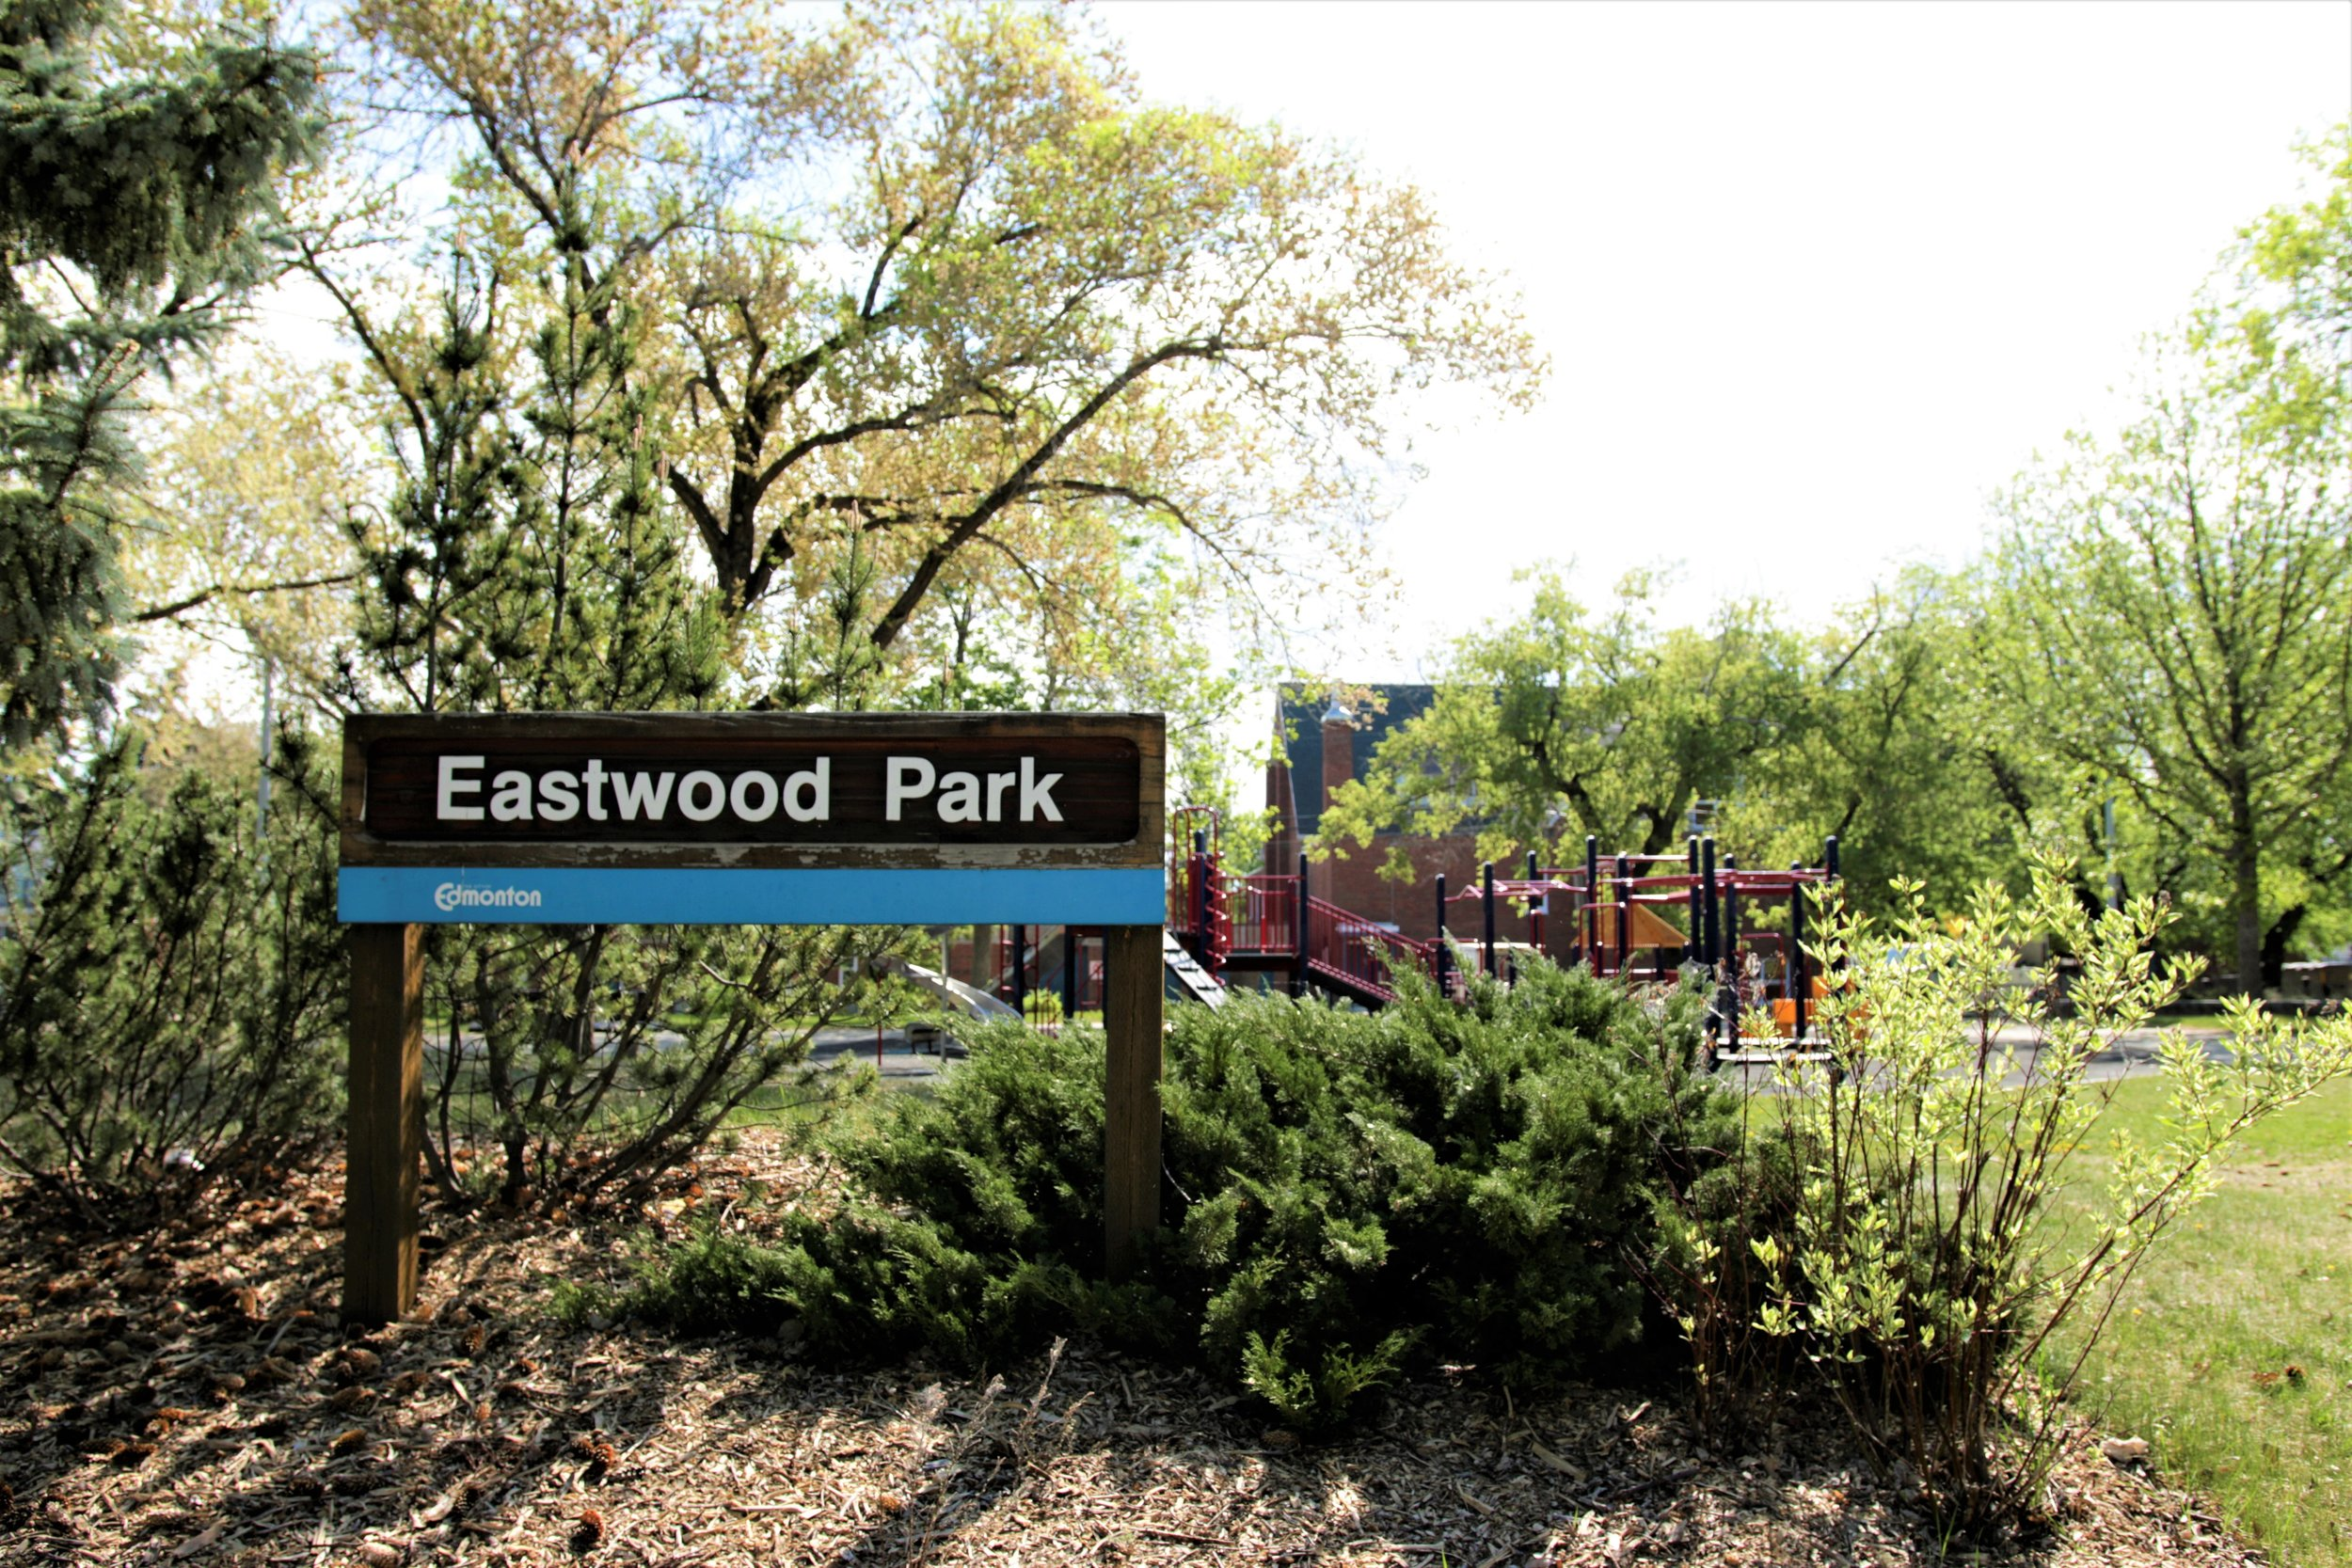 This nicely appointed little park in historic Eastwood has a great playground, an off-leash dog area, and a rink for winter fun!